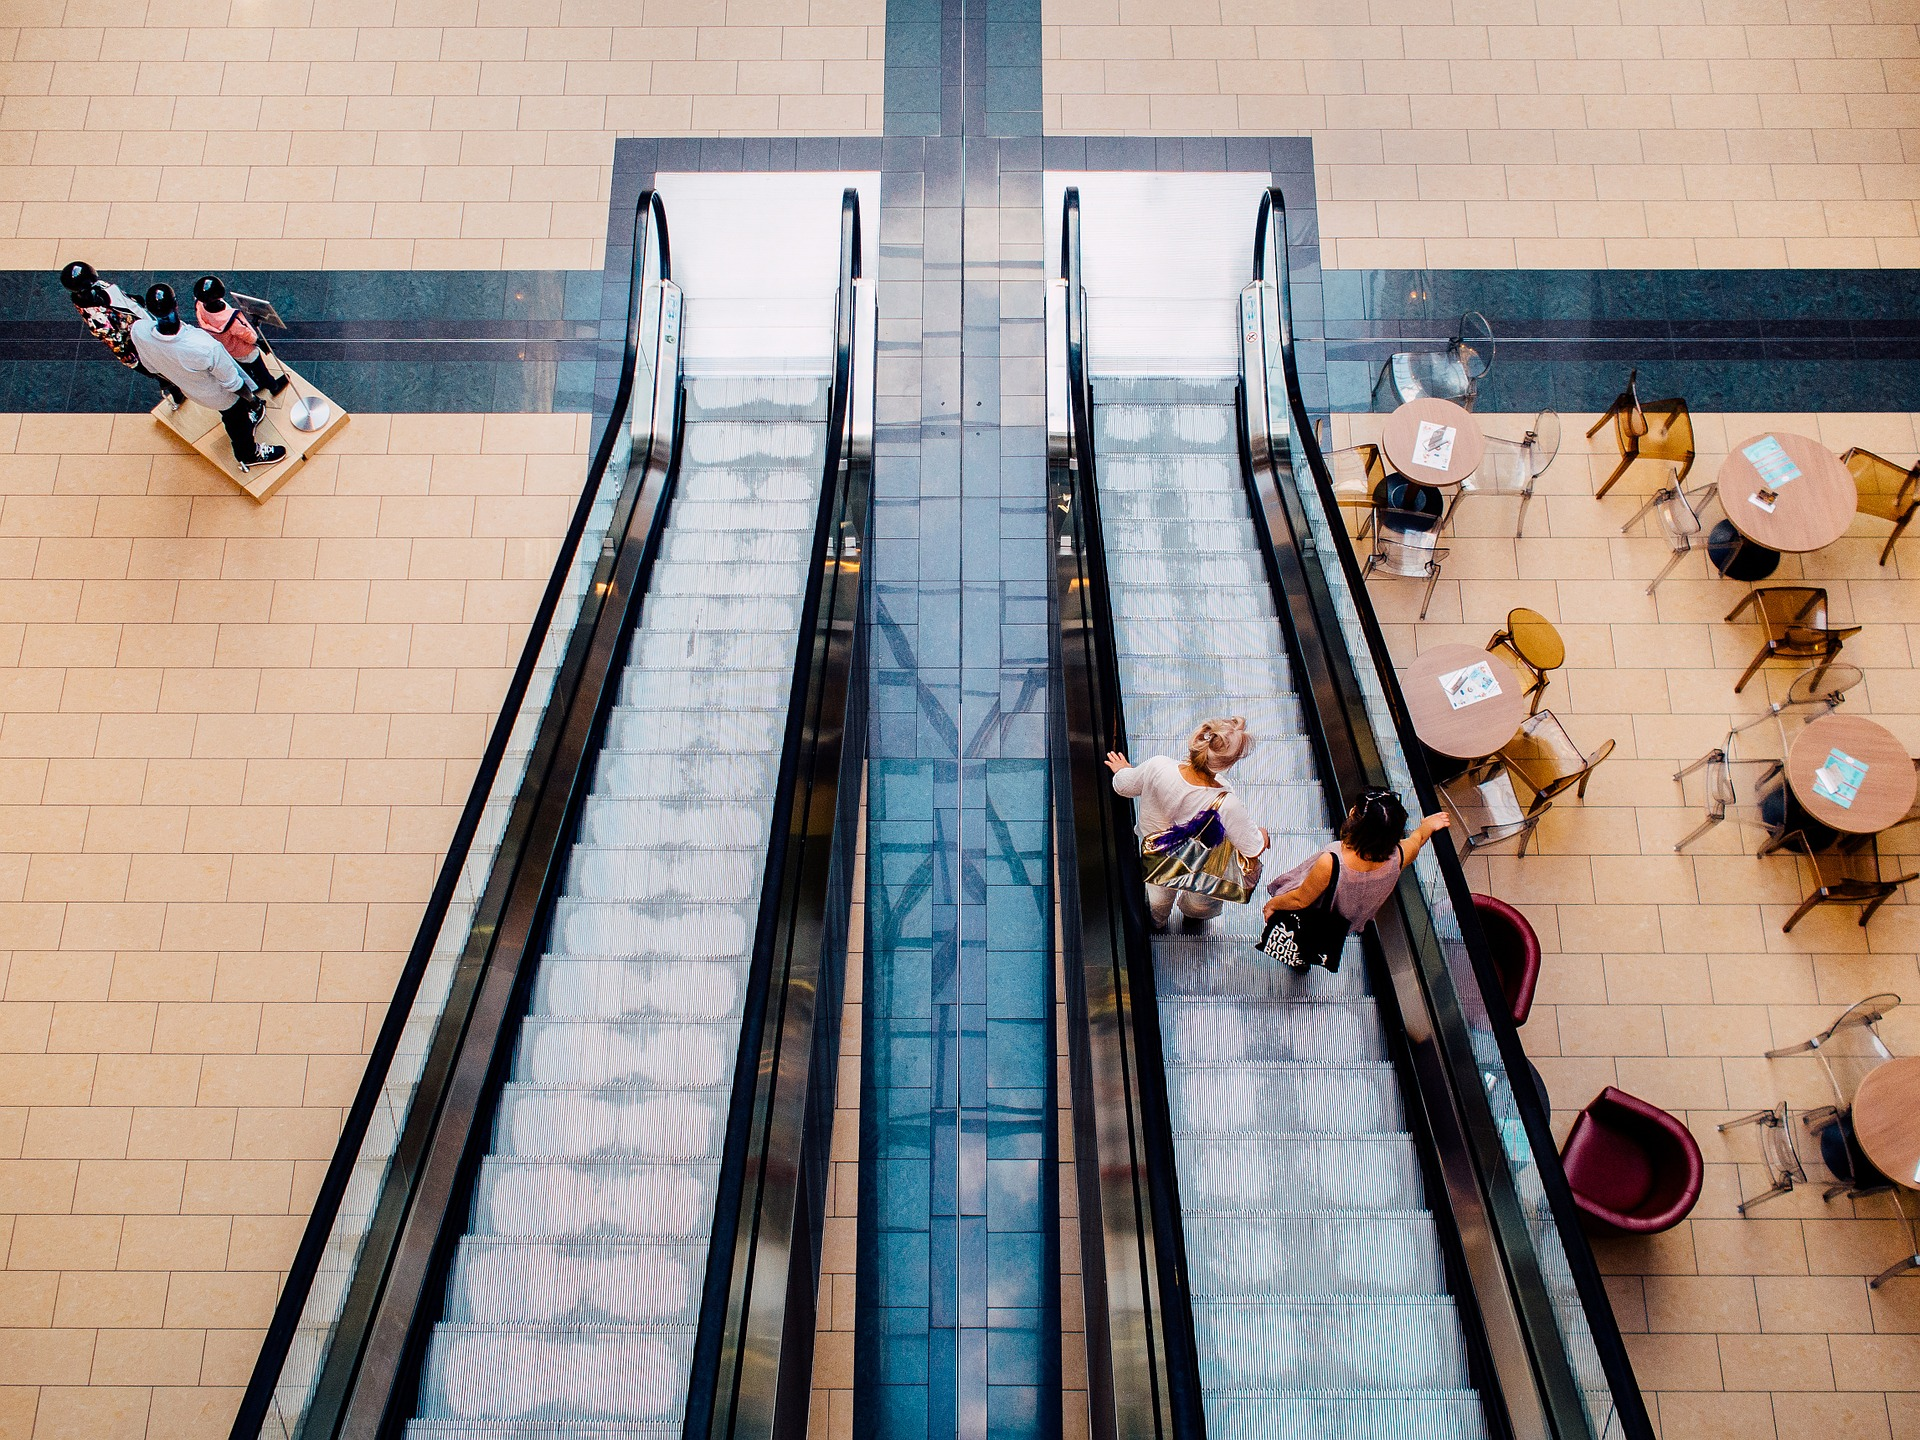 A mall can be a great place for some shops. But for others, the flow of traffic from shoppers looking for deals and discounts won't help them at all.